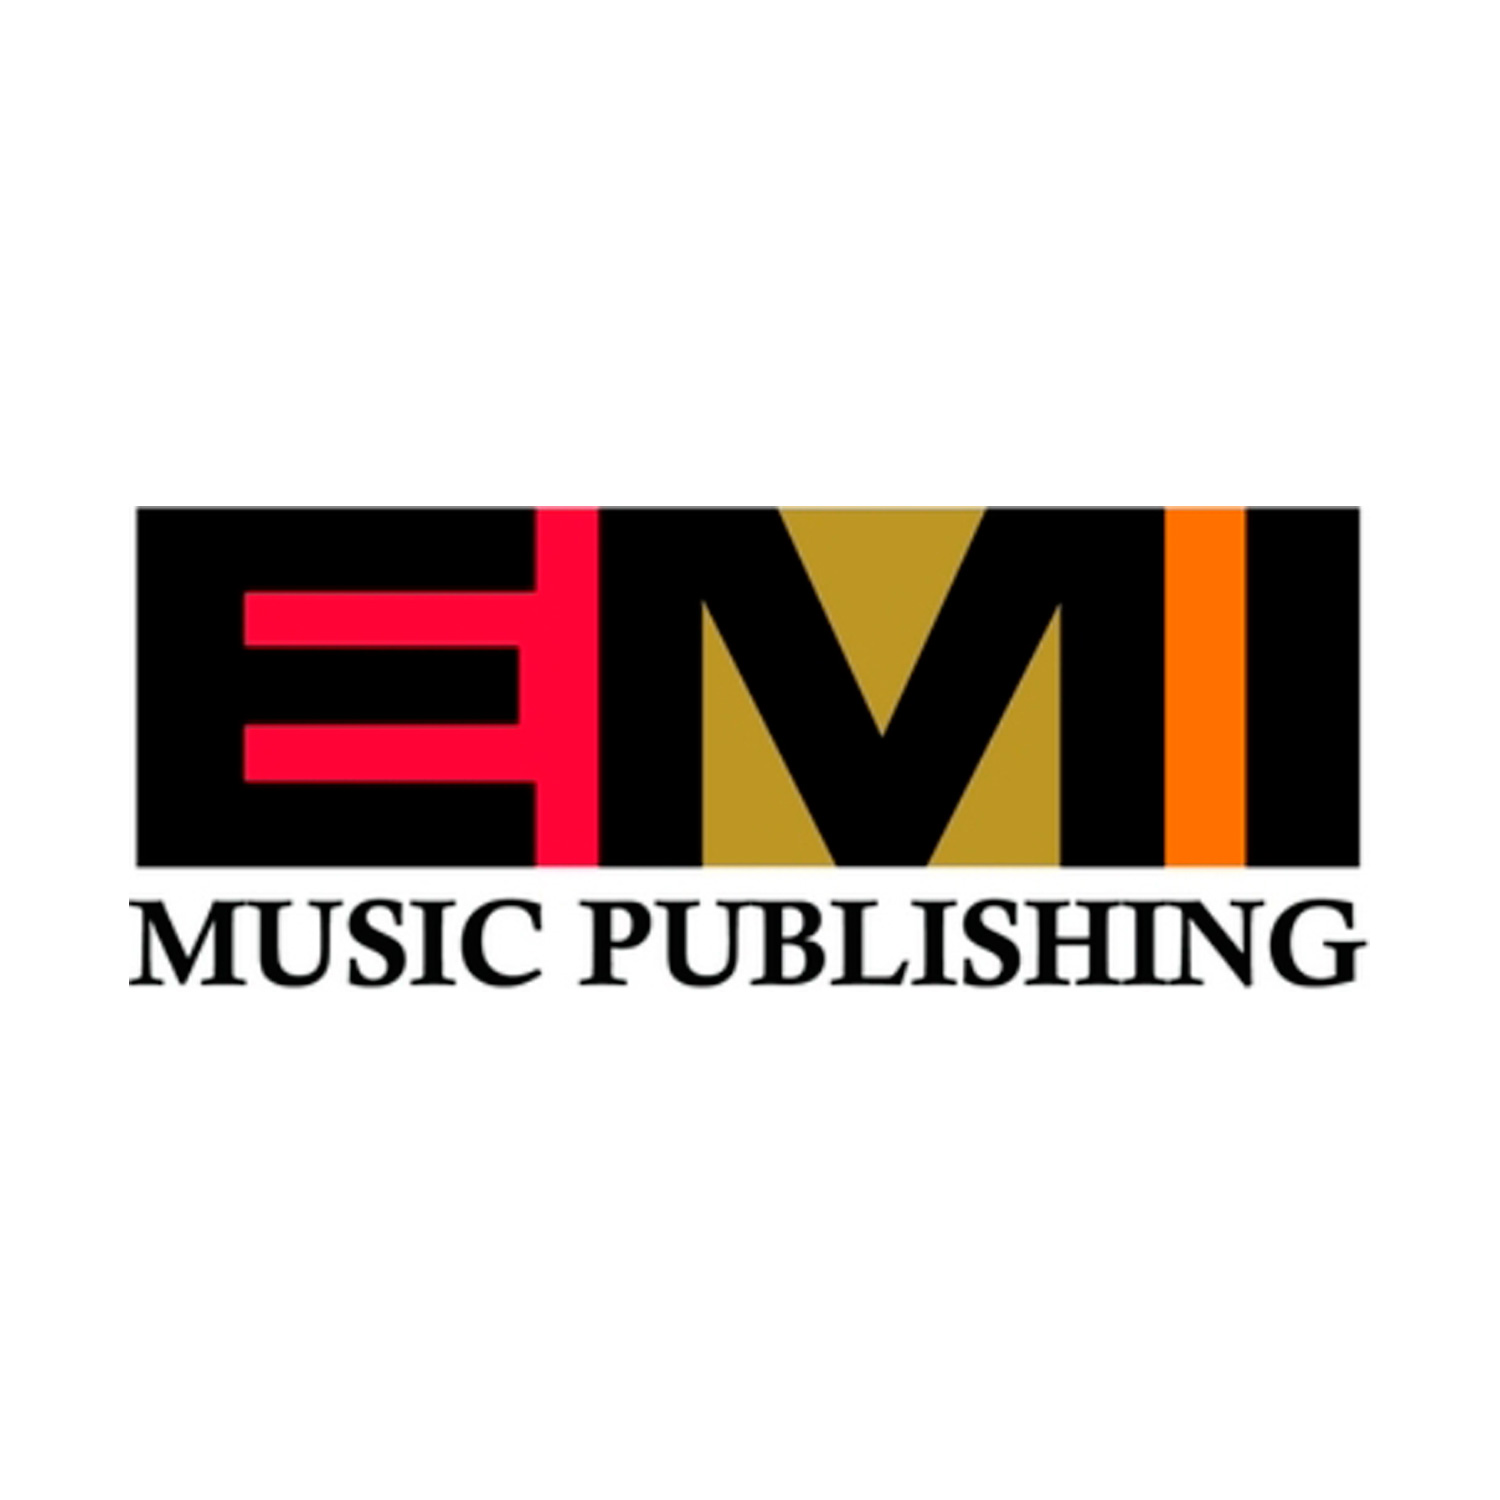 emi-music-publishing.jpg